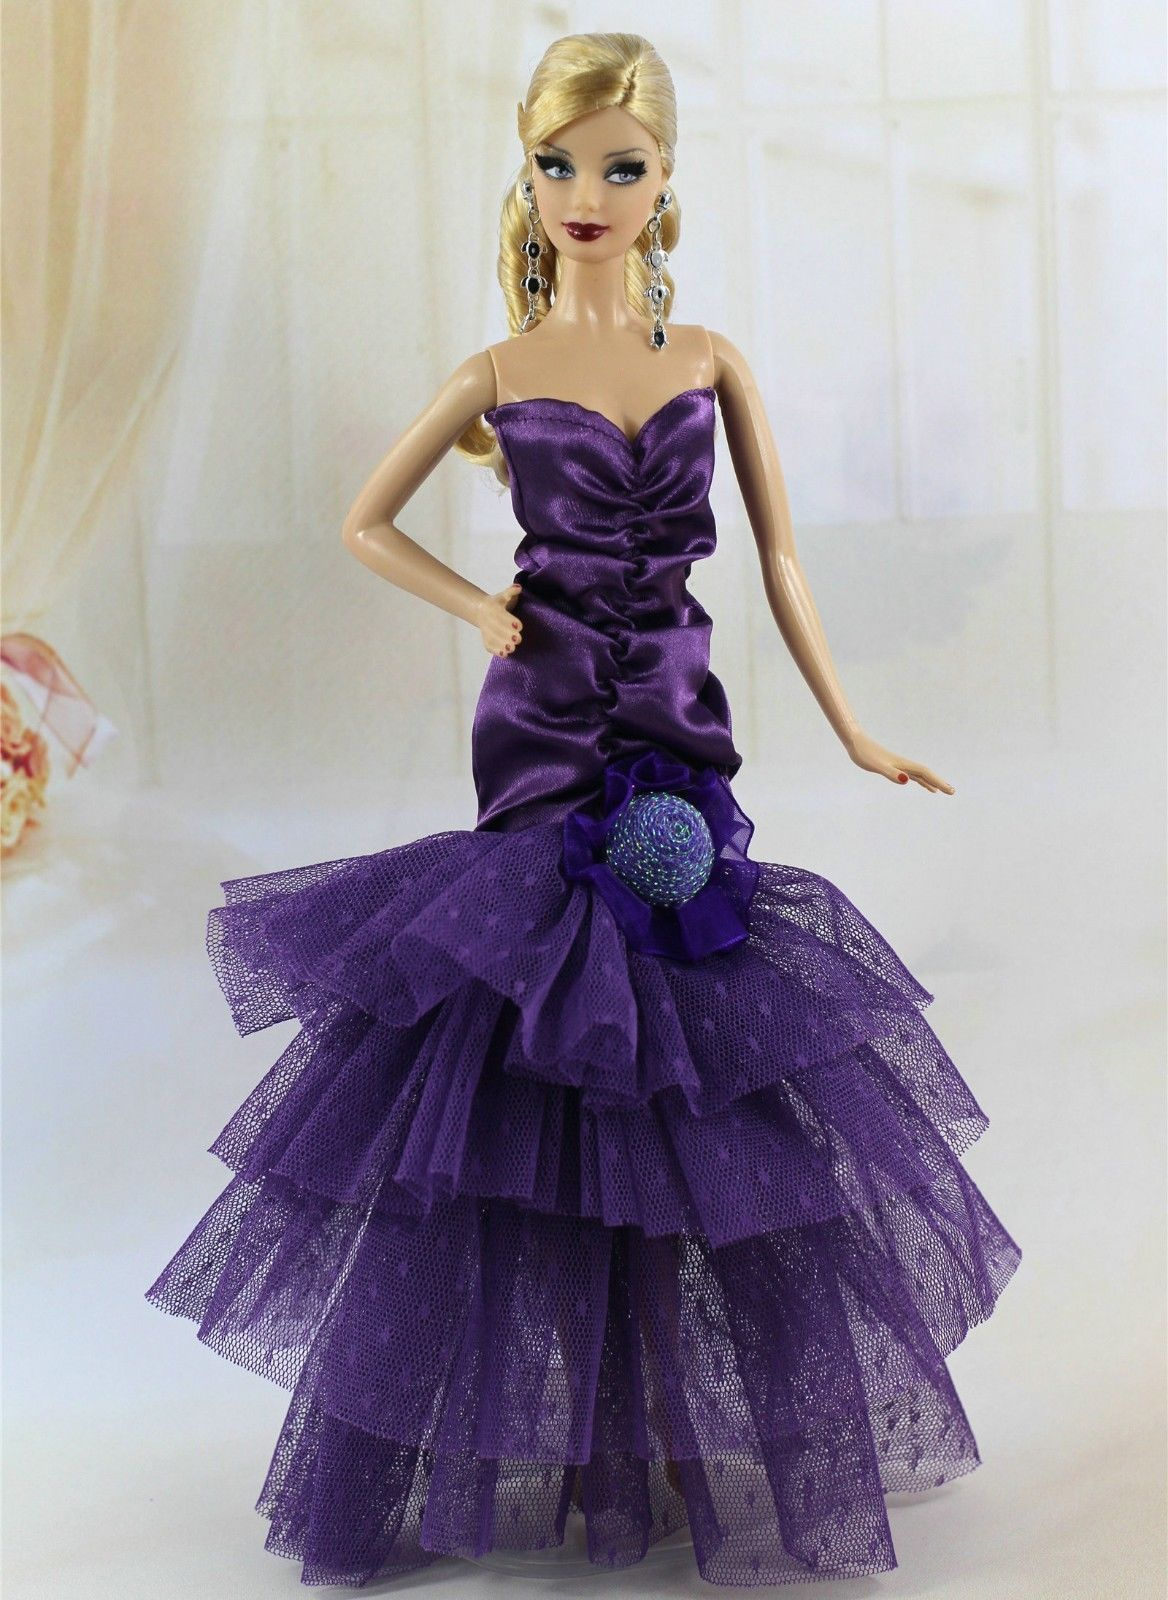 3* Random Diffirence Style Fashion Clothes/Outfit/Dress For Barbie ...